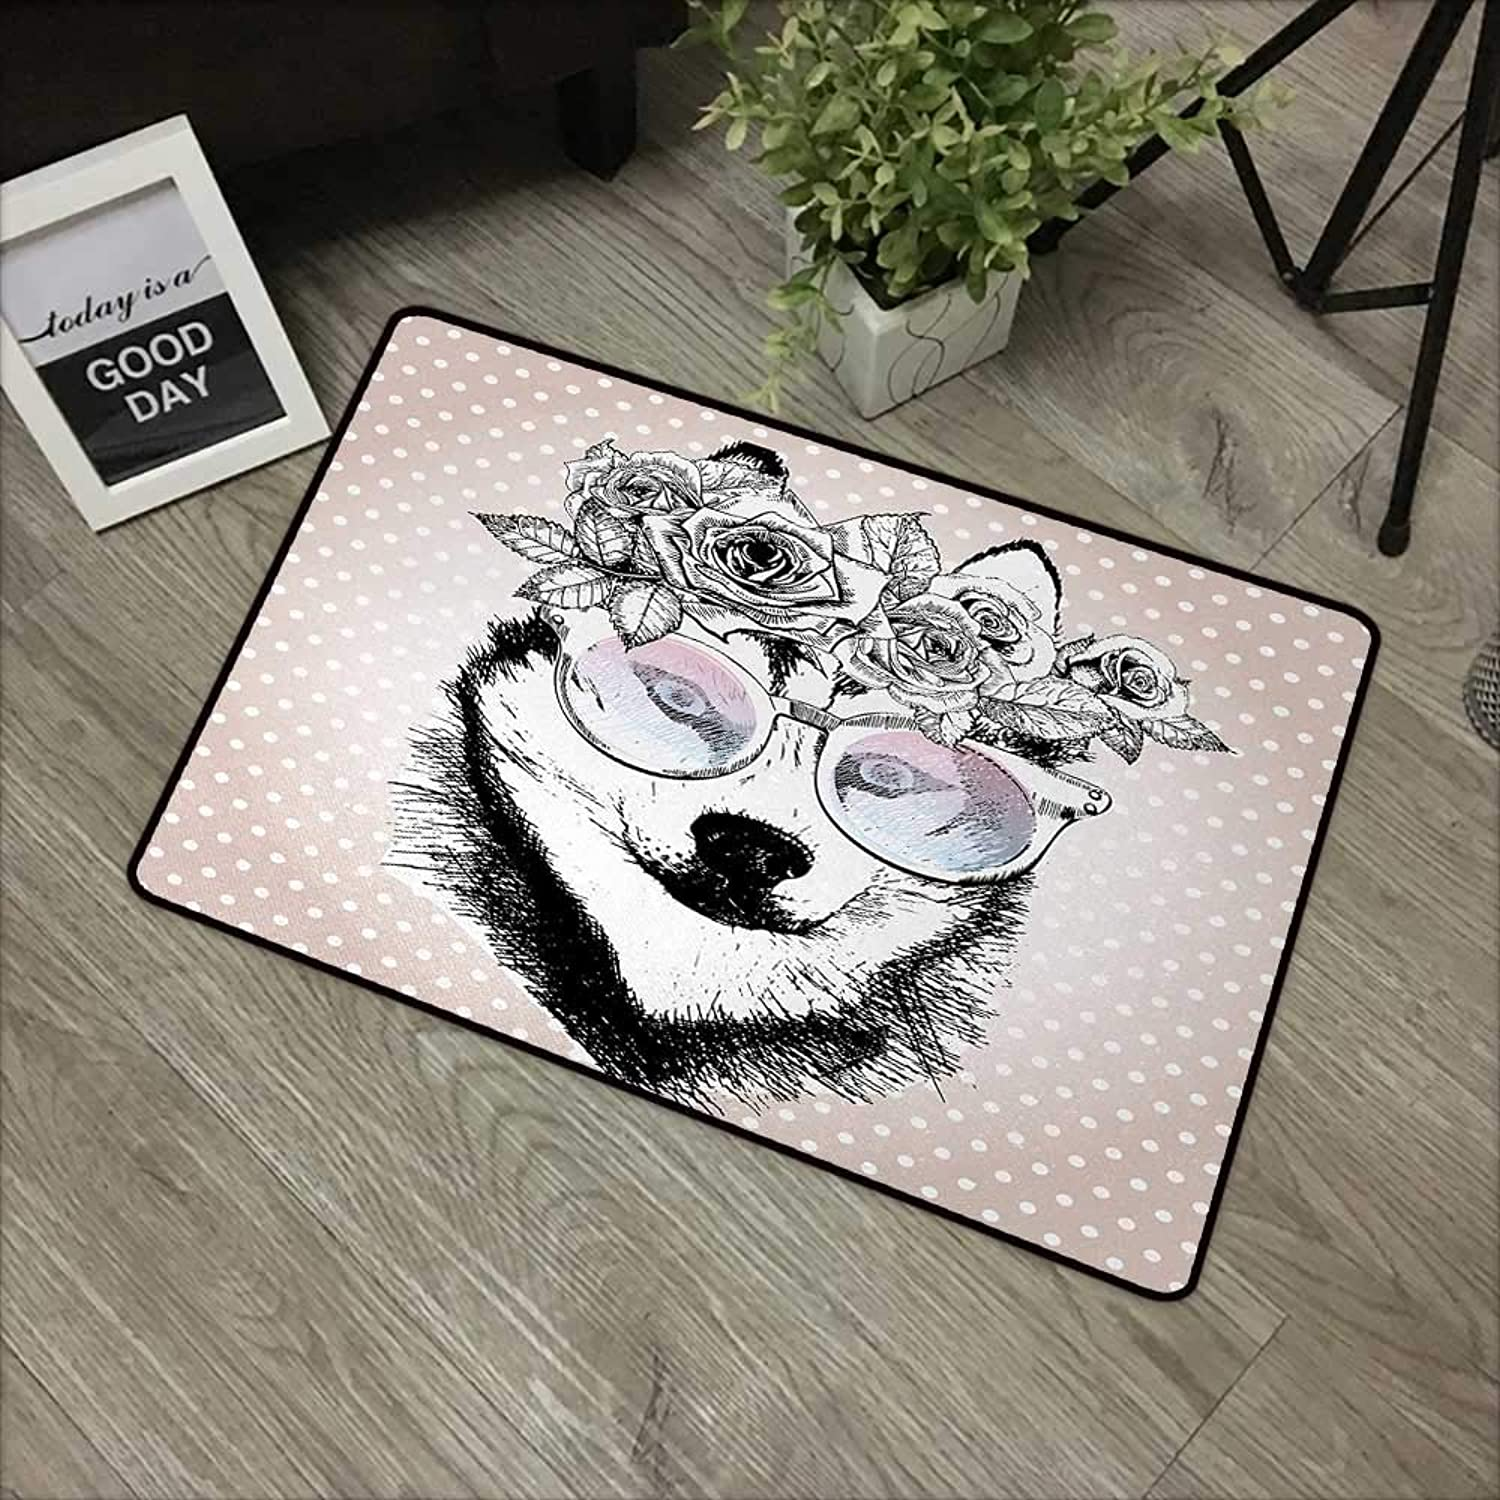 Bathroom Anti-Slip Door mat W35 x L59 INCH Alaskan Malamute,Vintage Polka Dots and Dog Wearing Floral Wreath and Sunglasses,pink gold Black White Easy to Clean, Easy to fold,Non-Slip Door Mat Carpet